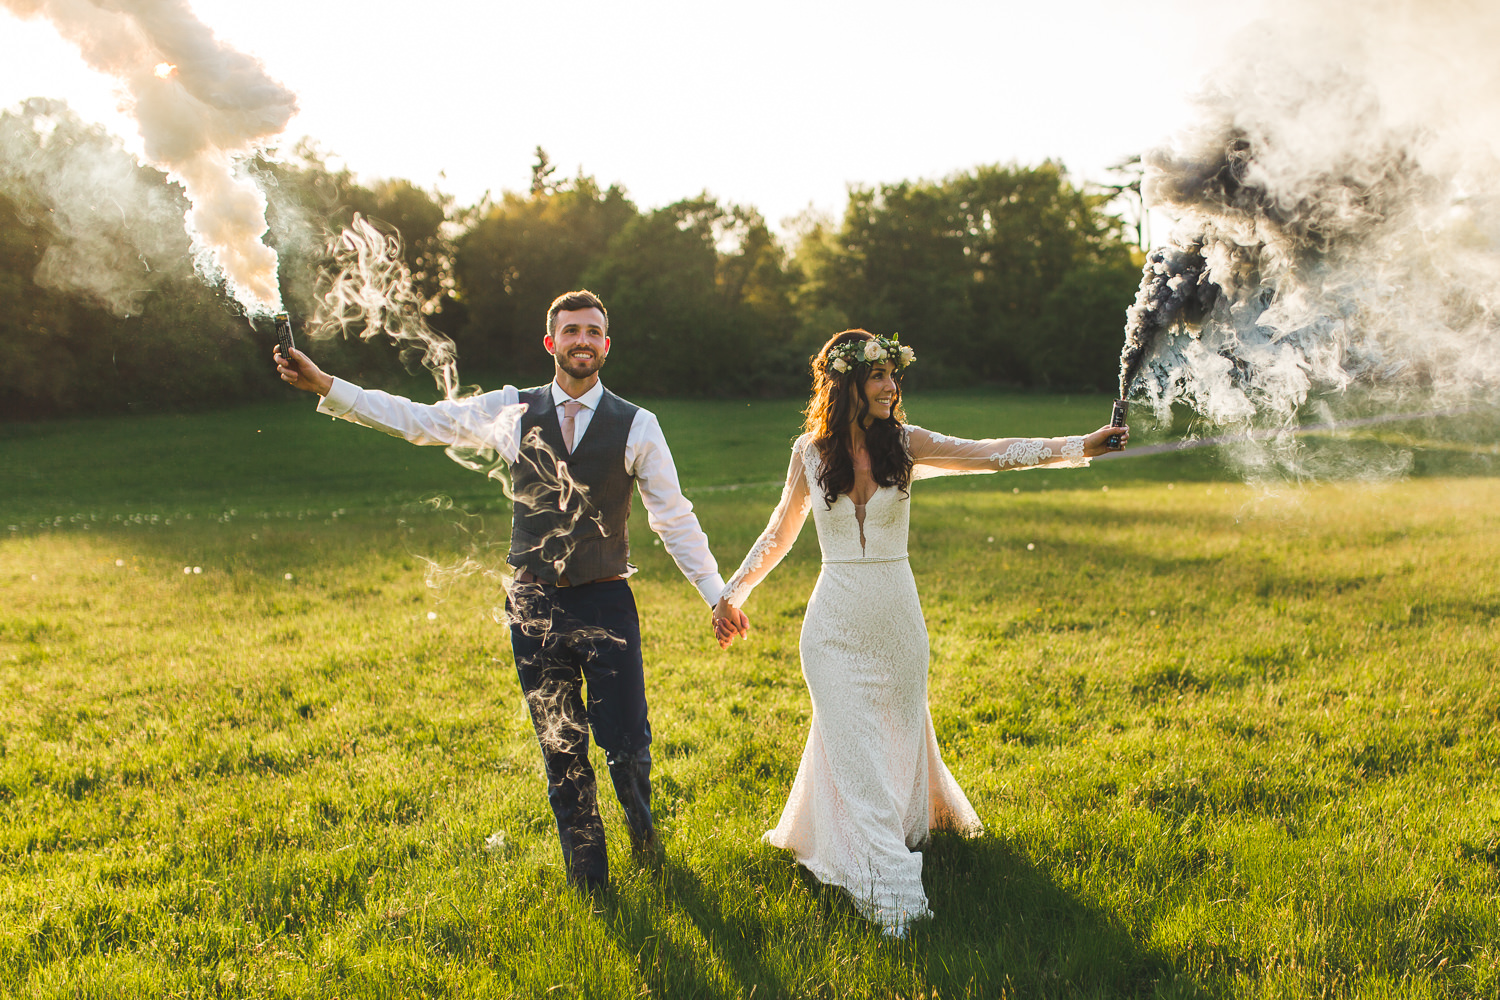 Bride and groom with smoke grenades laughing at painshill park. boho wedding vibes during Alternative Surrey Painshill Park Wedding Photography